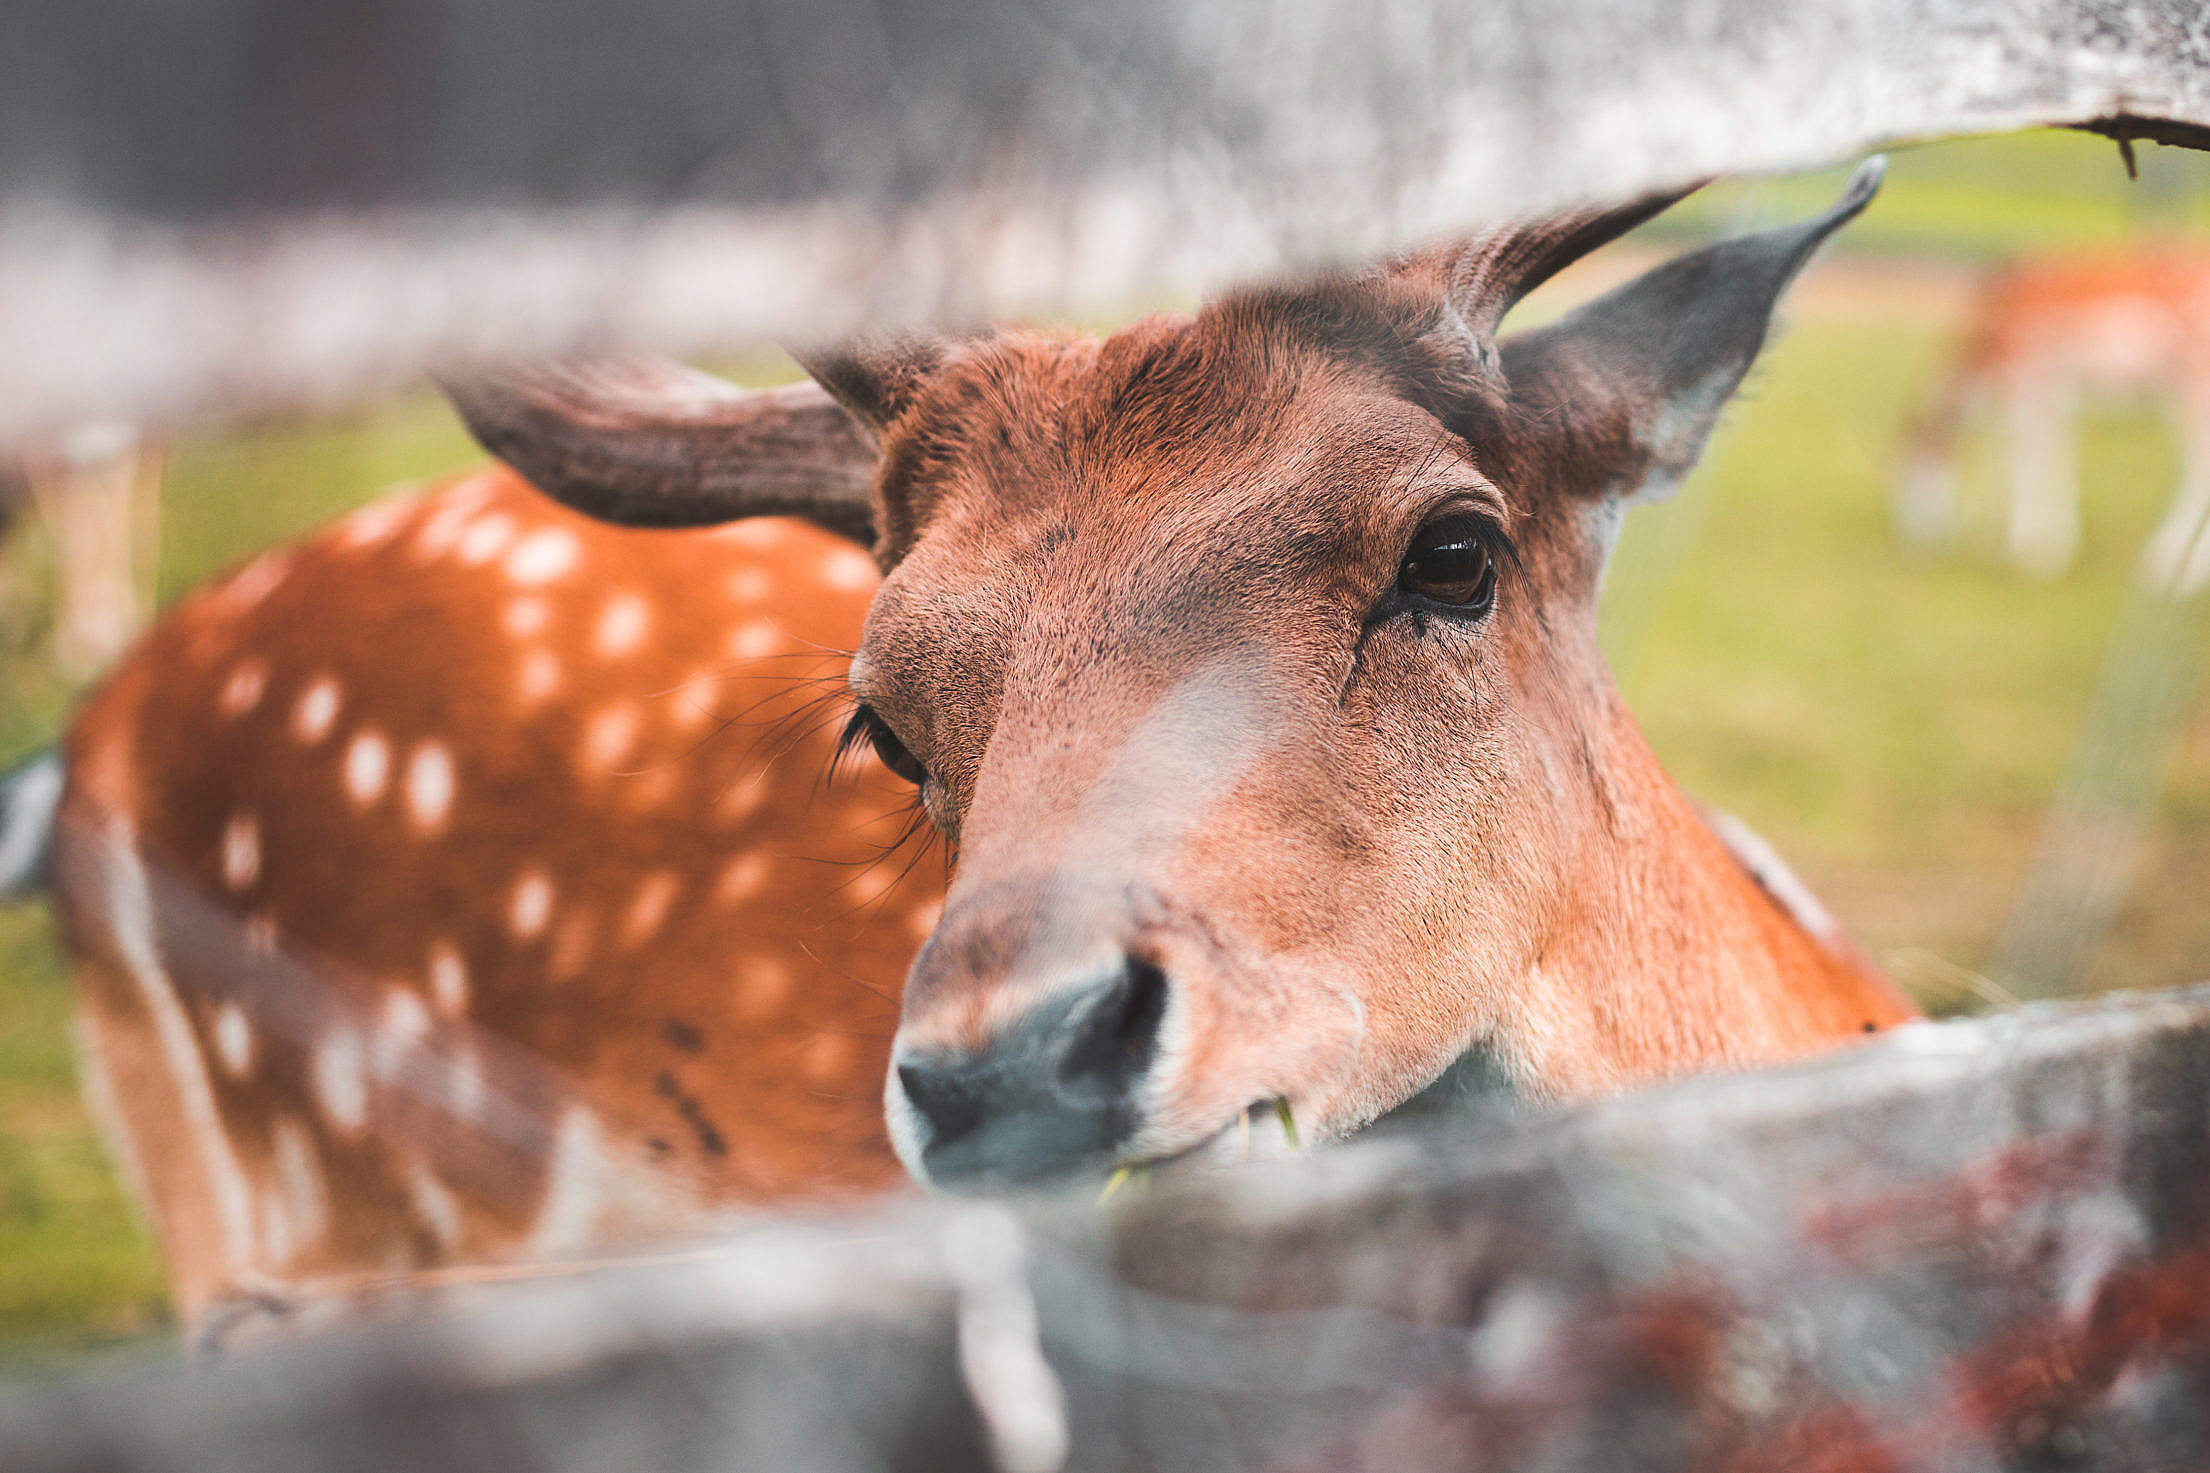 Friendly Deer Looking Through a Fence Free Stock Photo